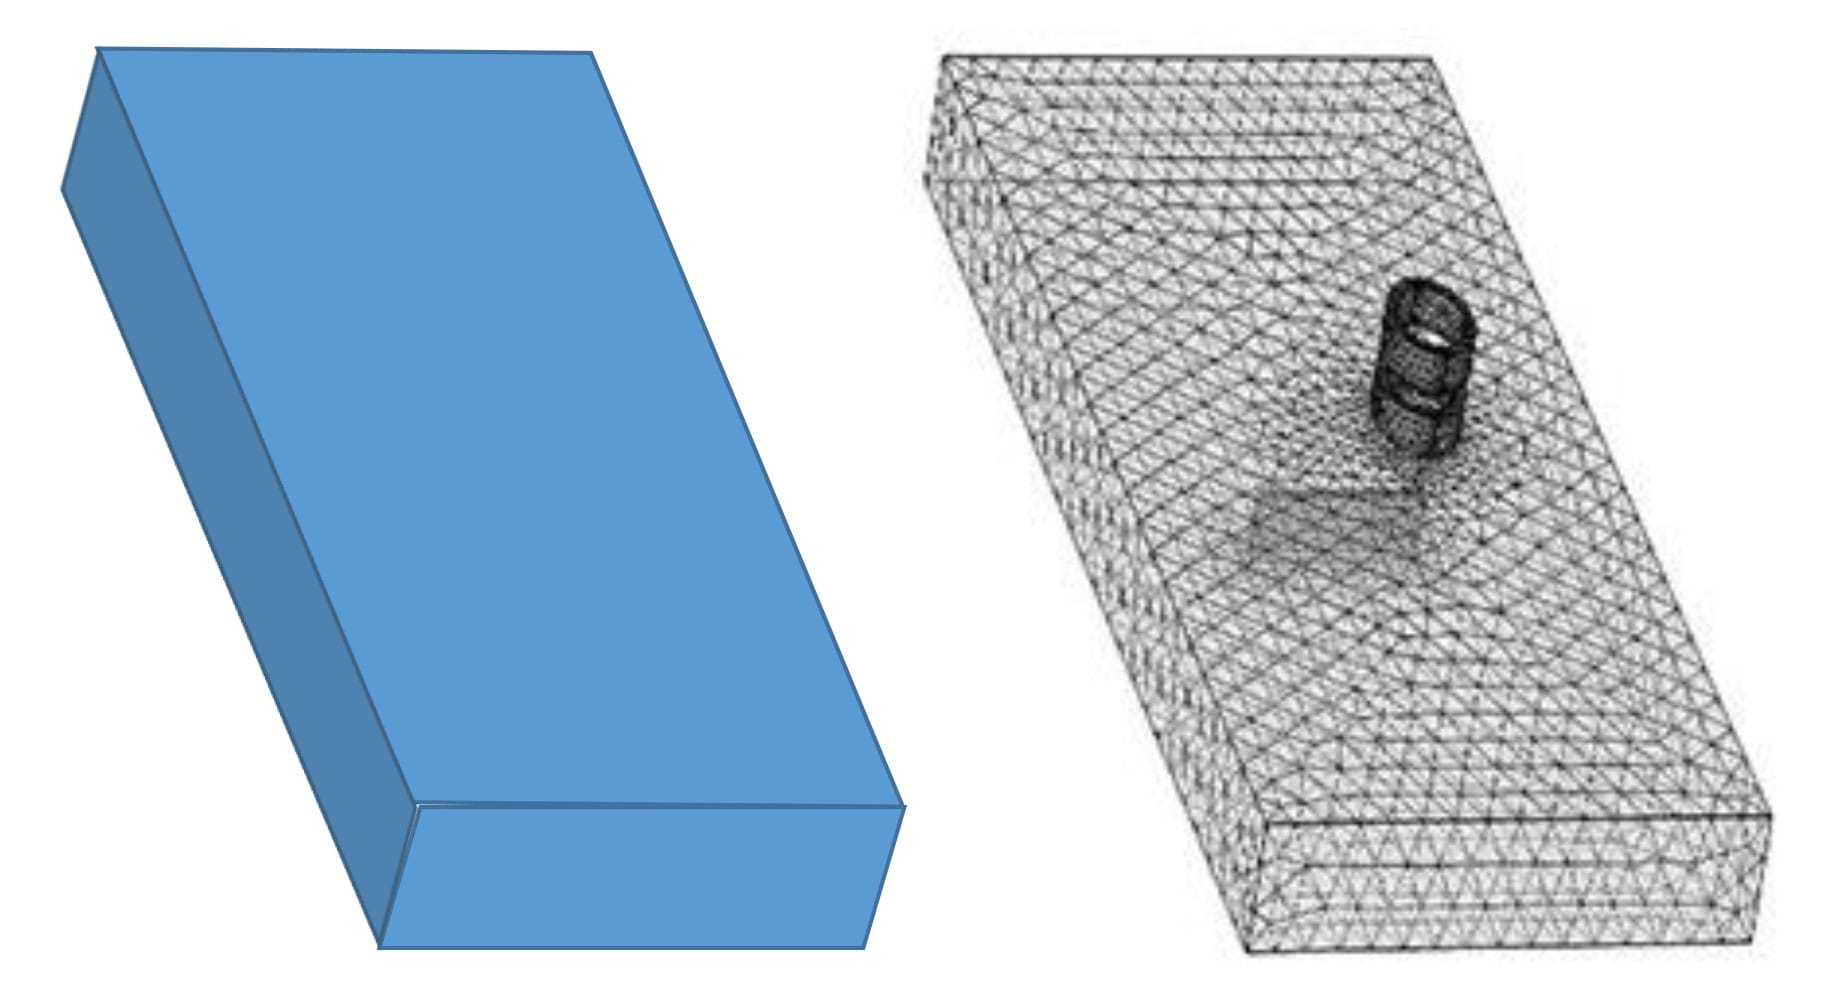 Two similar 3D drawings of rectangular prisms. The left diagram appears solid while the right diagram appears covered by a truss-like pattern of lines, as if it were composed of a 3D mesh.